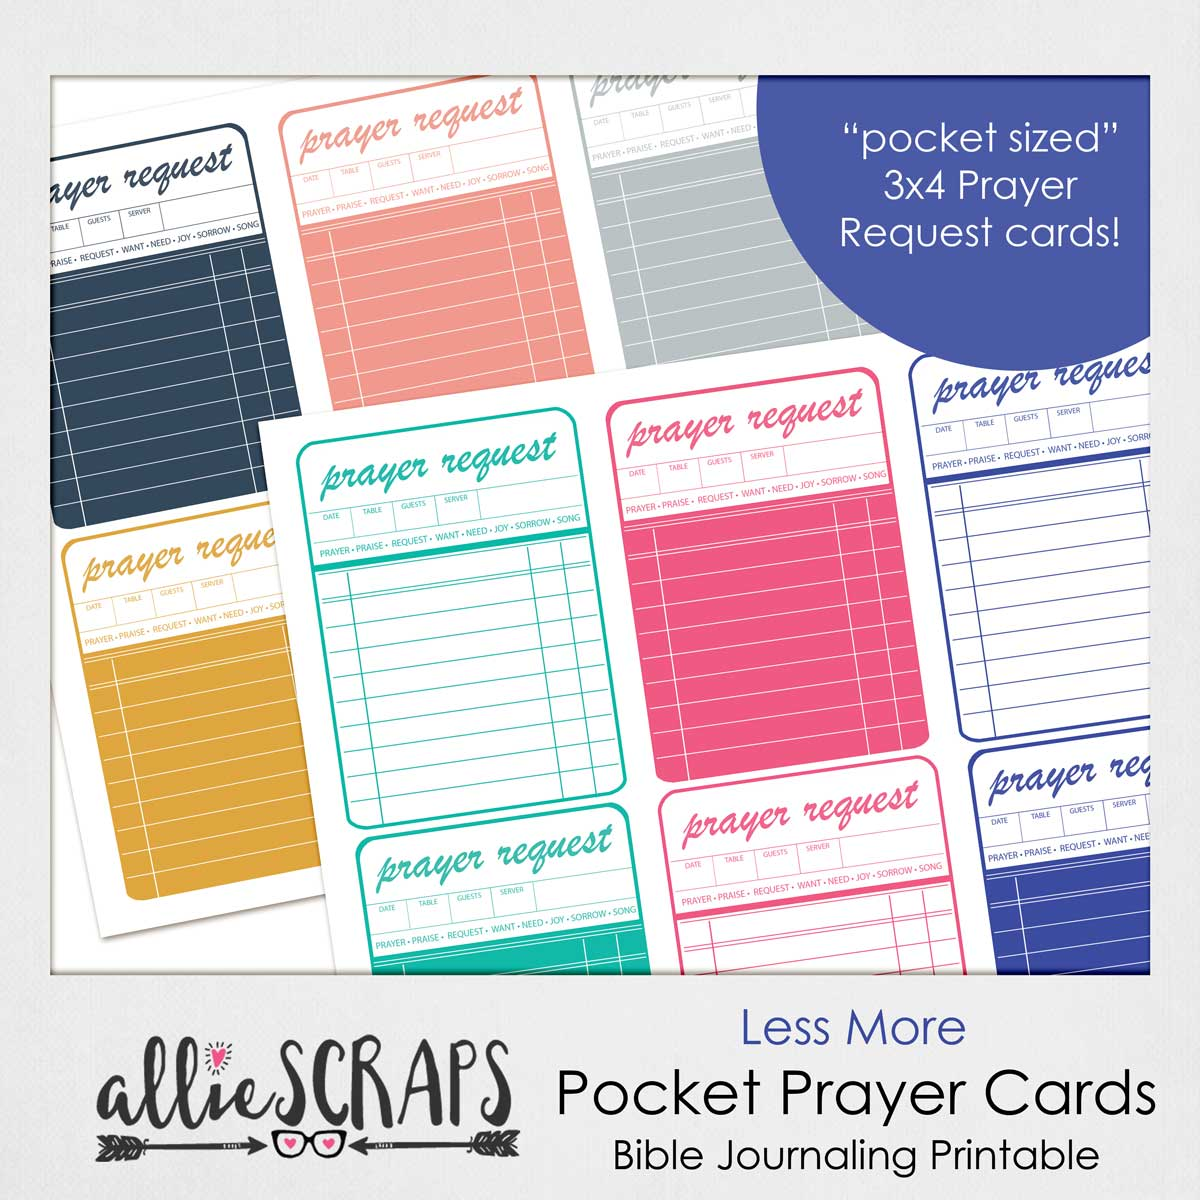 image regarding Prayer Cards Printable identified as Significantly less Further more Pocket Prayers Card Printable